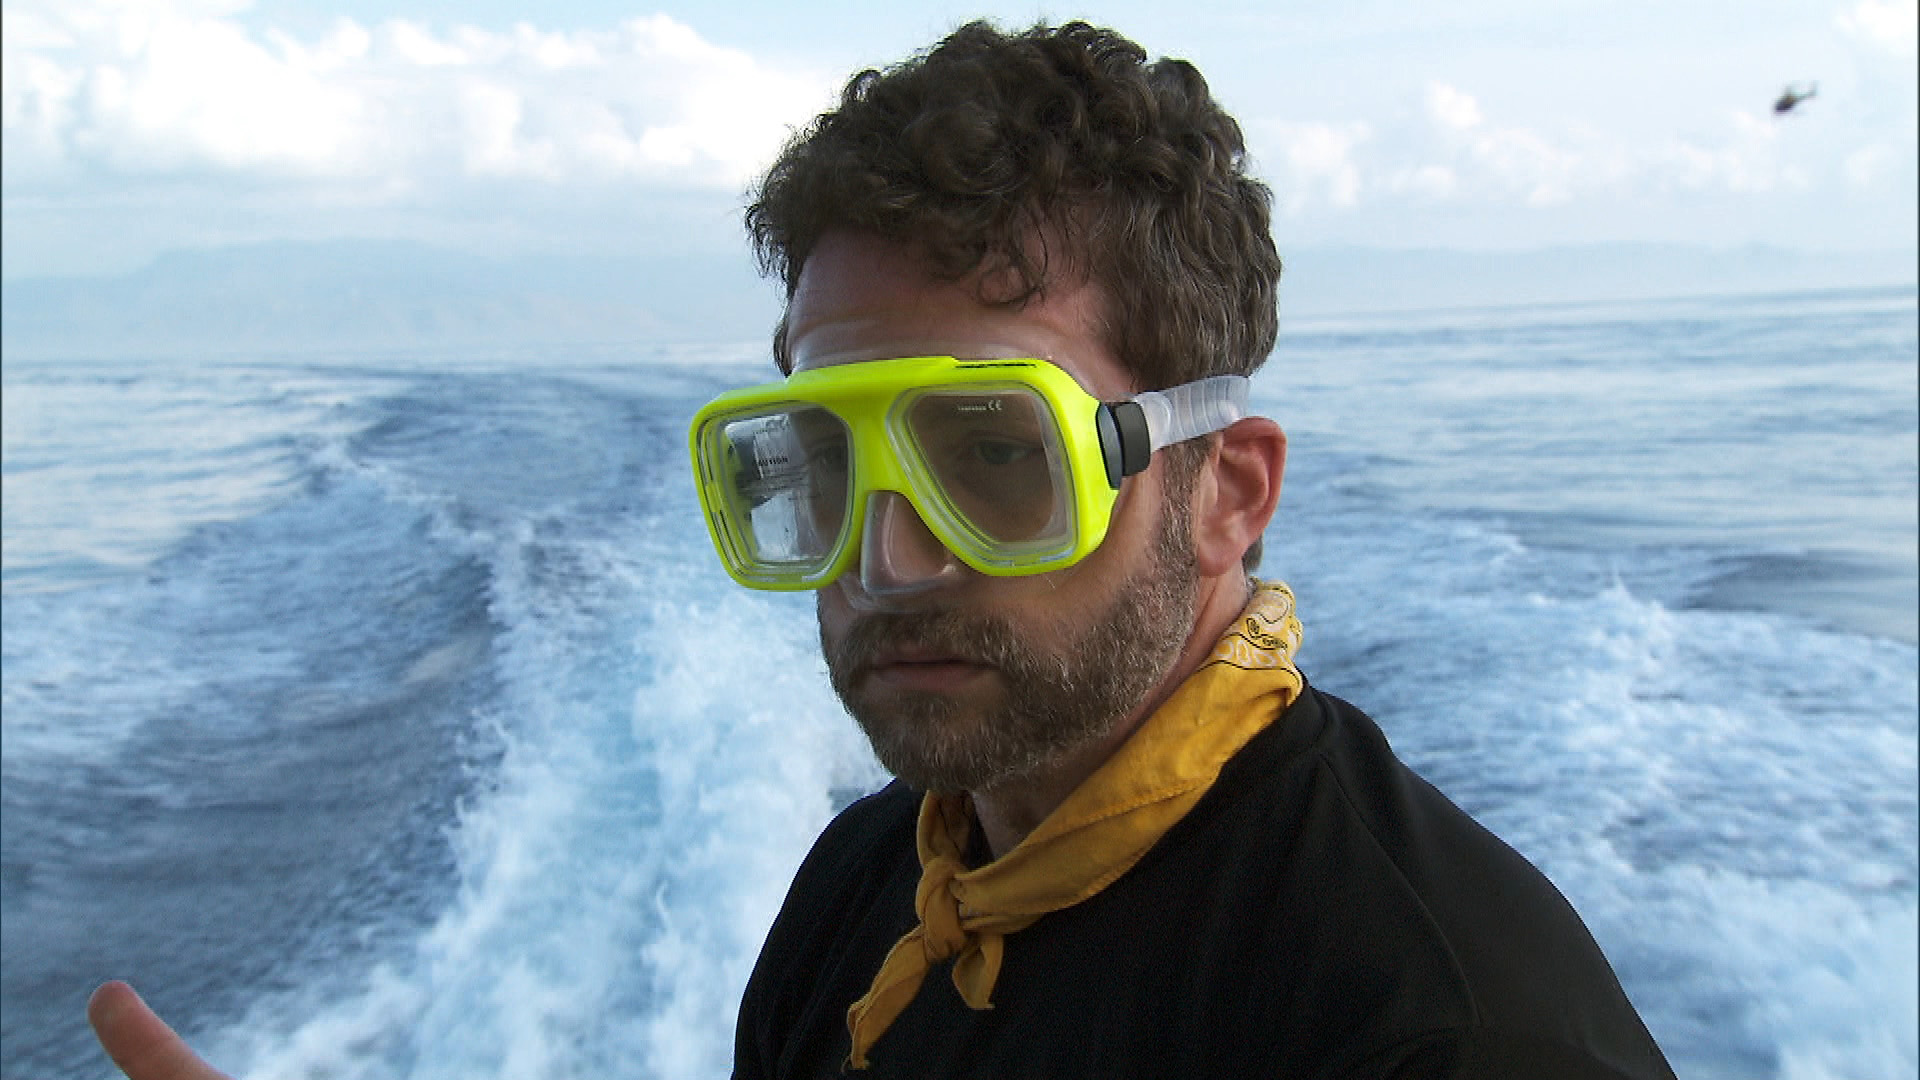 Burnie prepares to go snorkeling at the Active Route Marker.